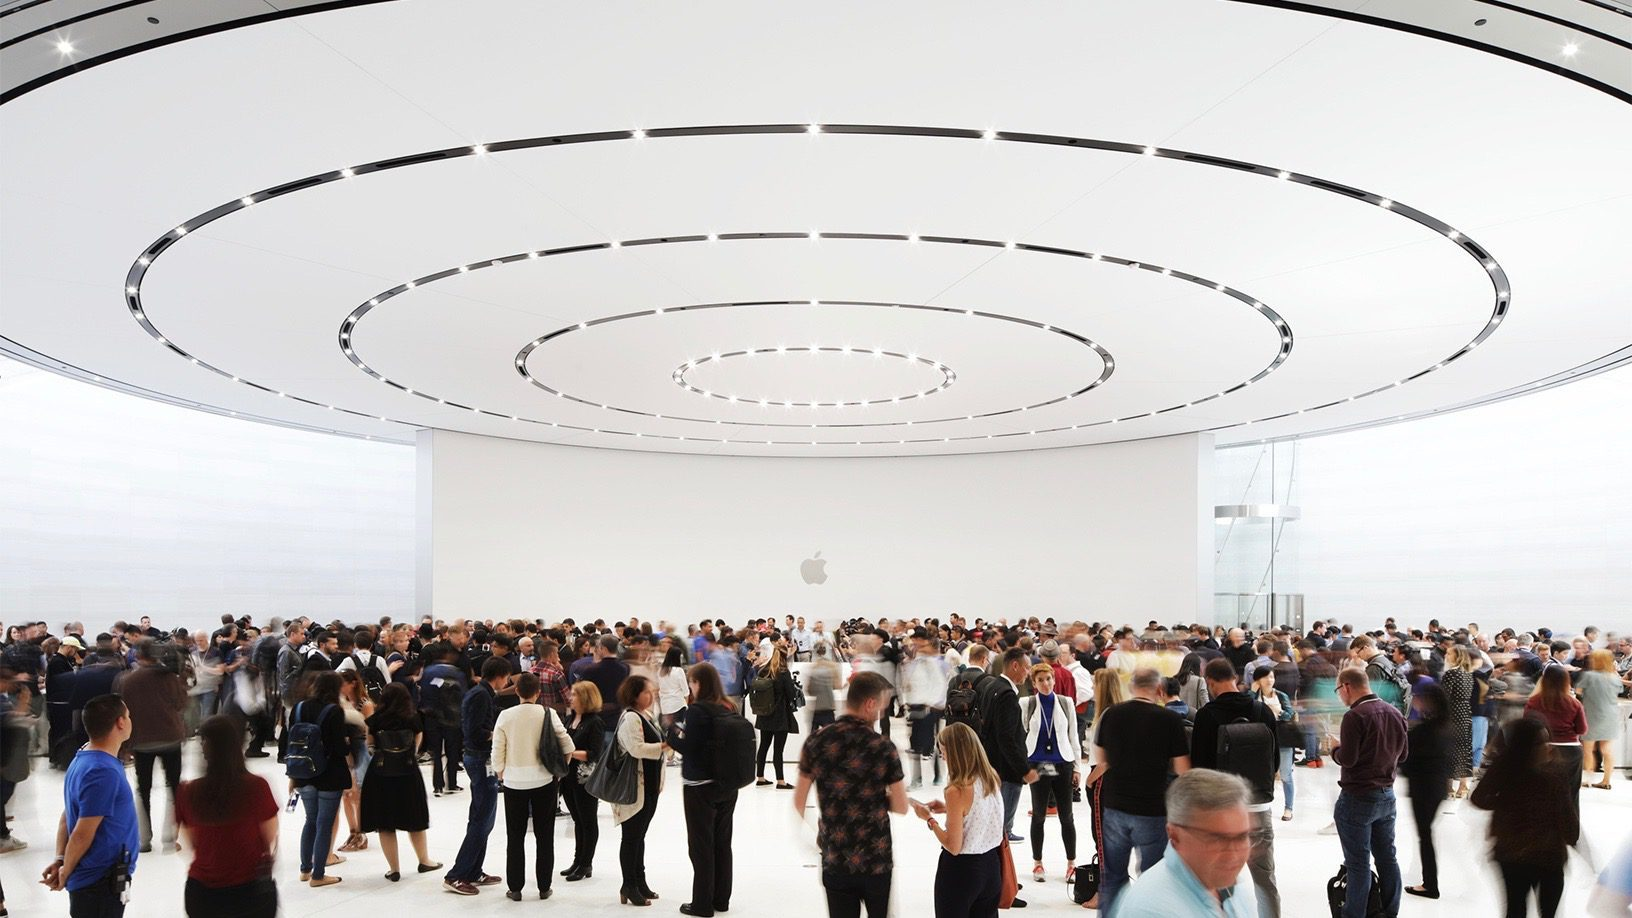 Apple to Hold Annual Shareholders Meeting on March 1st at Steve Jobs Theater